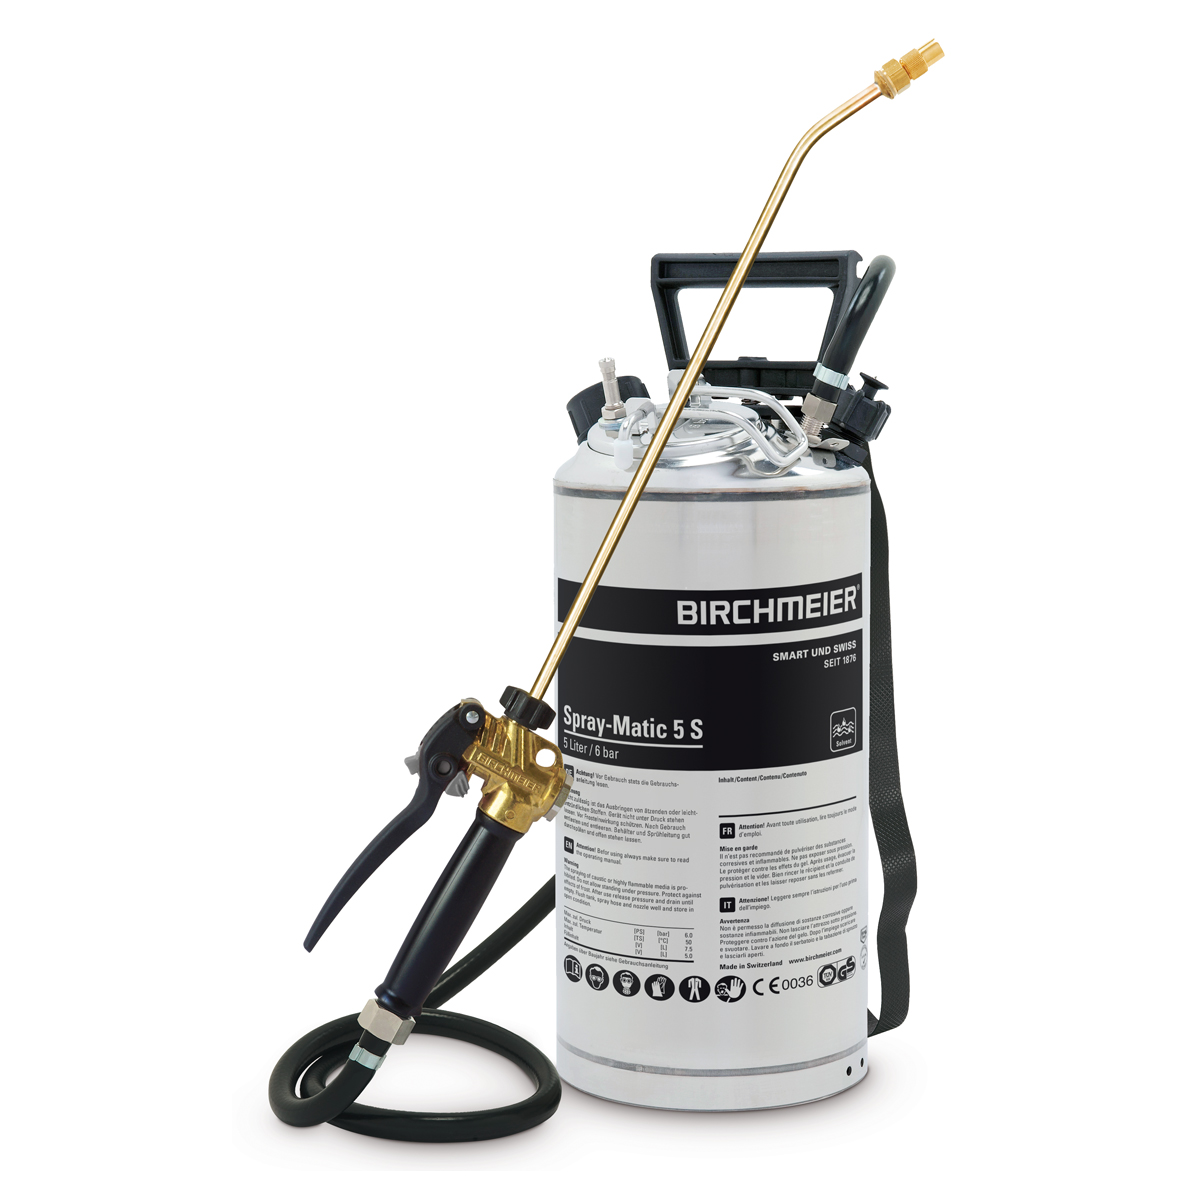 Spray-Matic 5 S with hand pump and compressed-air union